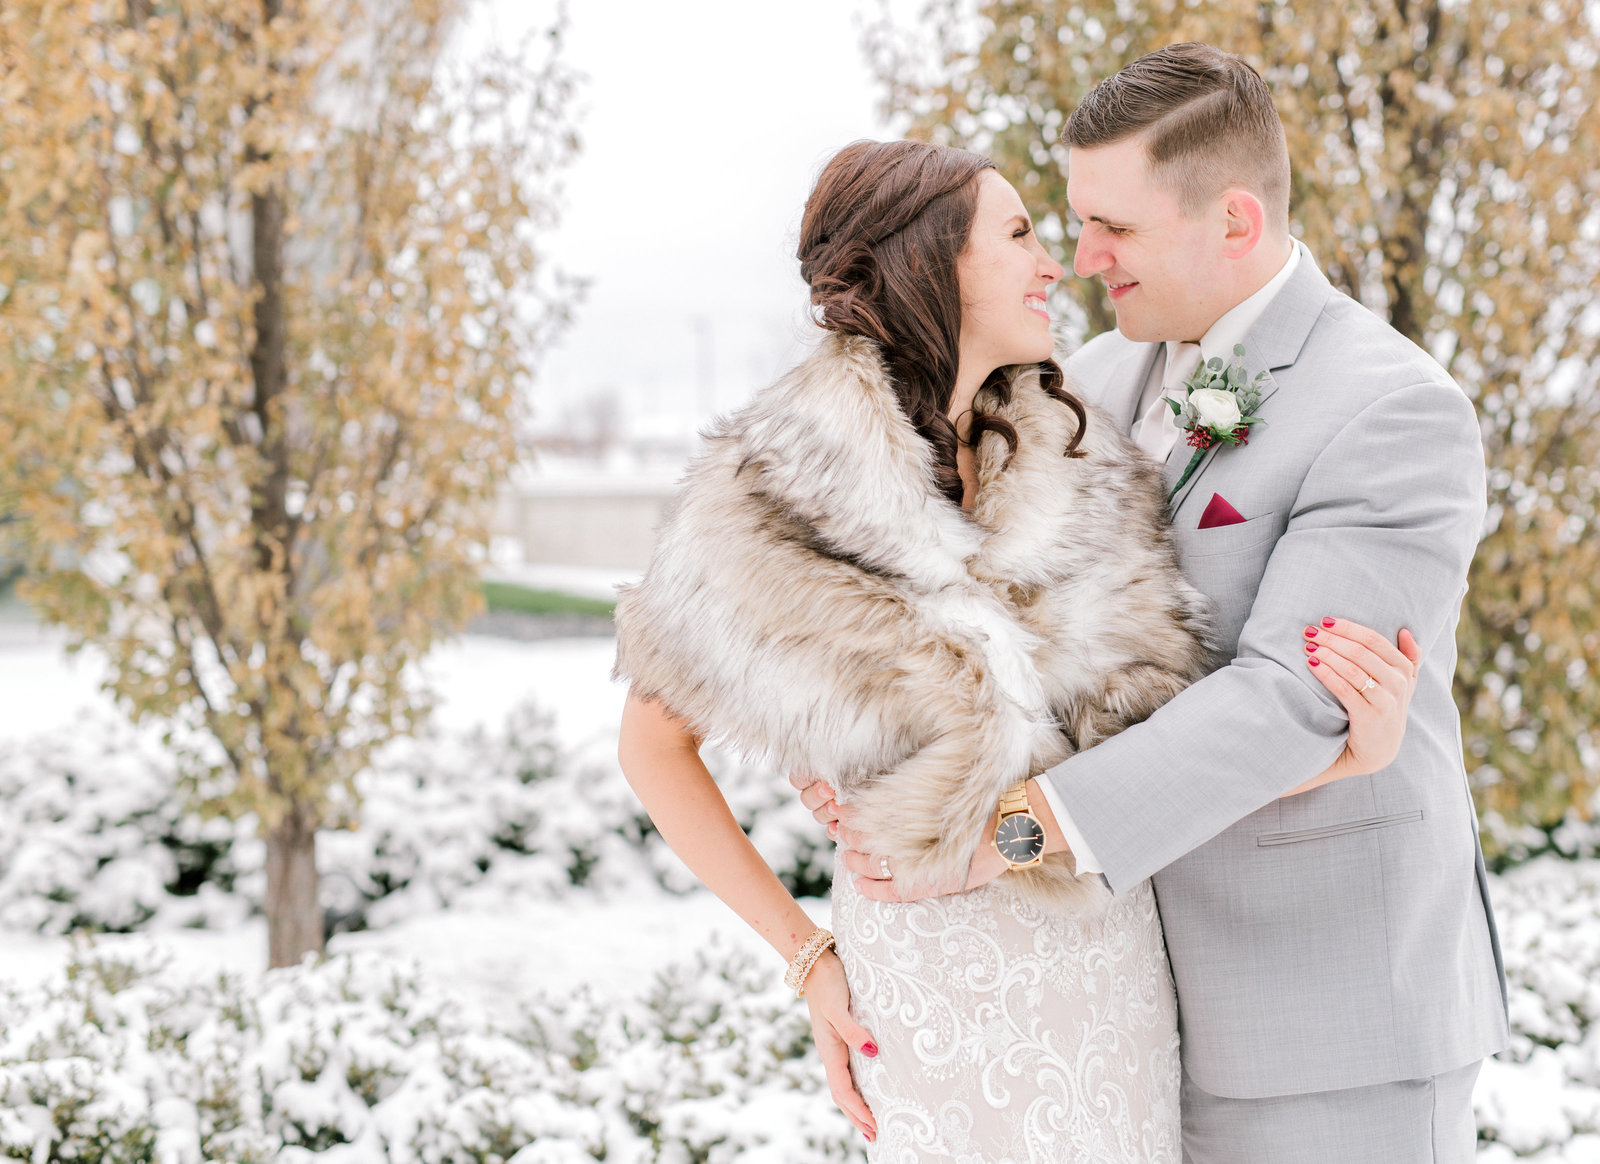 bride and groom embrace during winter wedding